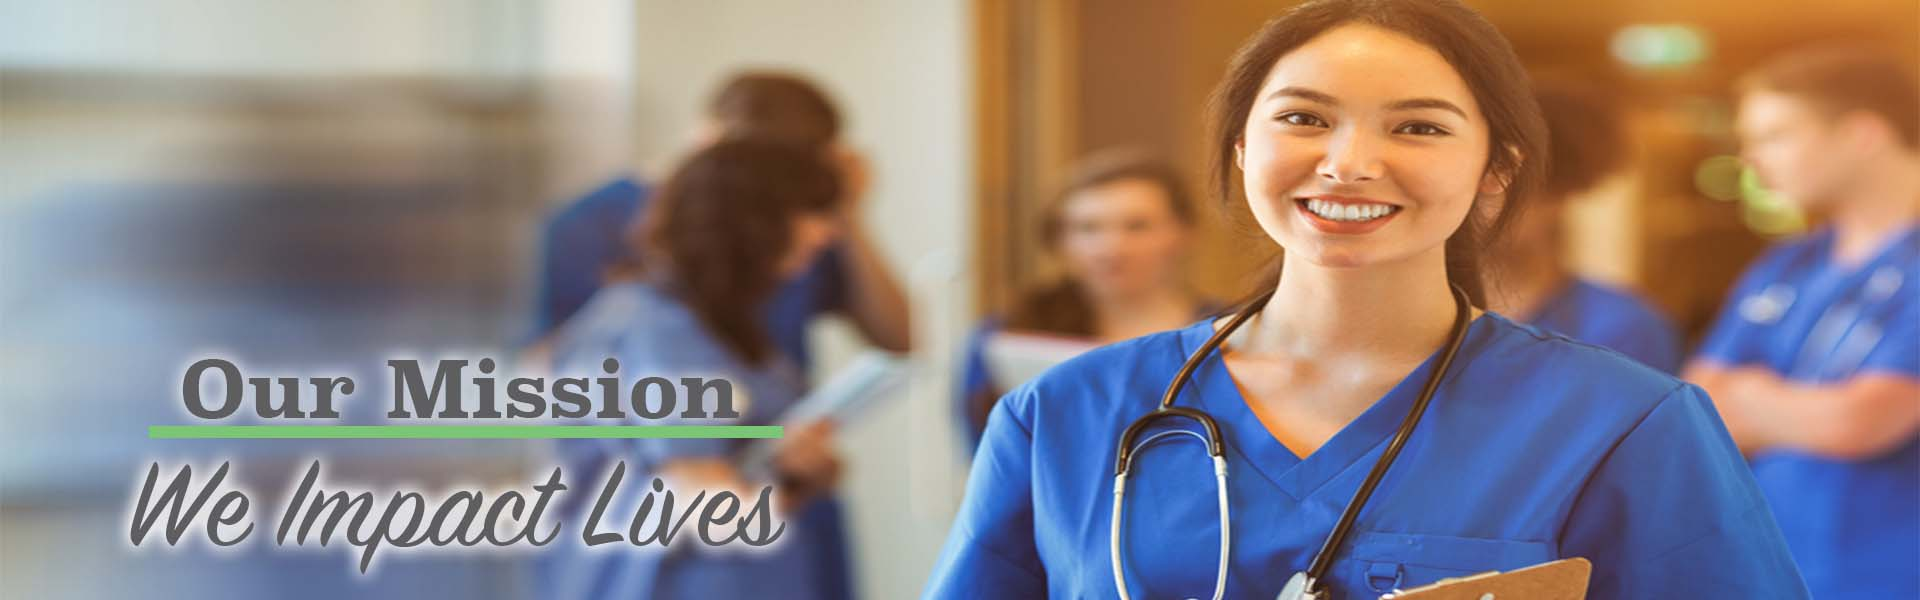 nurse in blue scrubs, our mission, we impact lives